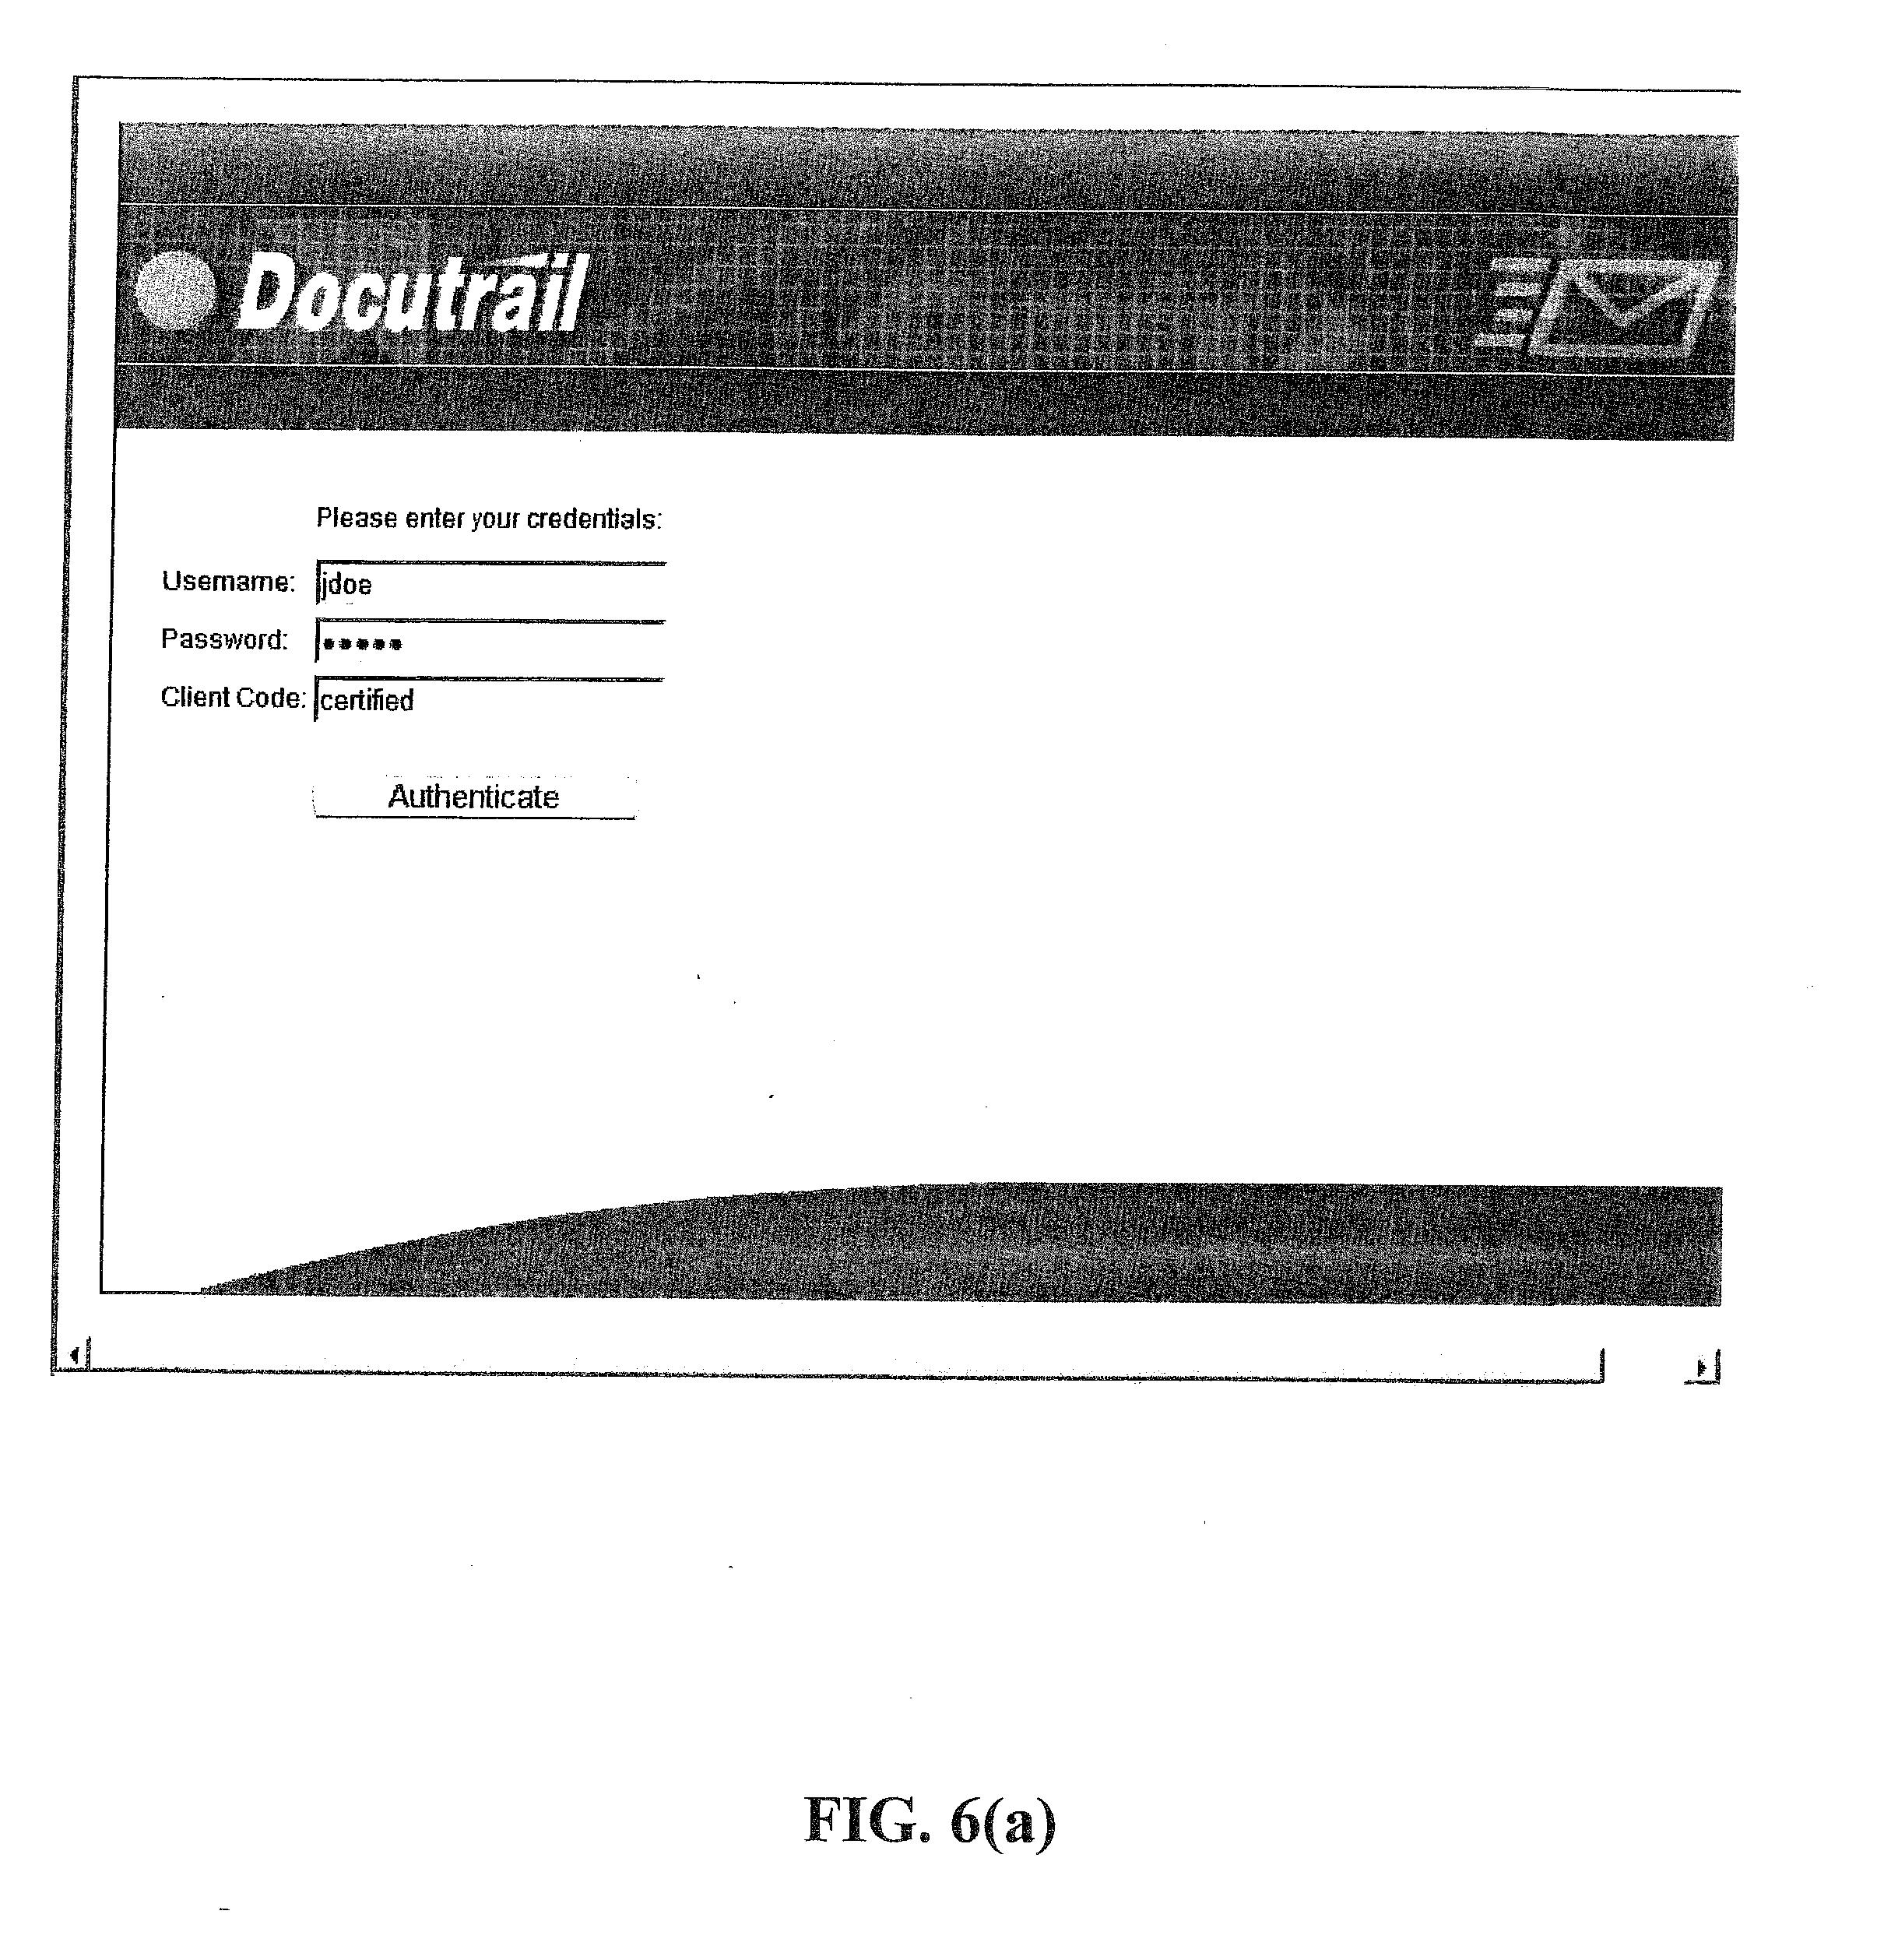 Westin Hotel Receipt Word Patent Us  Outbound Document System And Method  Invoice Printers with Retention Invoice Pdf Patent Drawing Texas Registration Receipt Excel